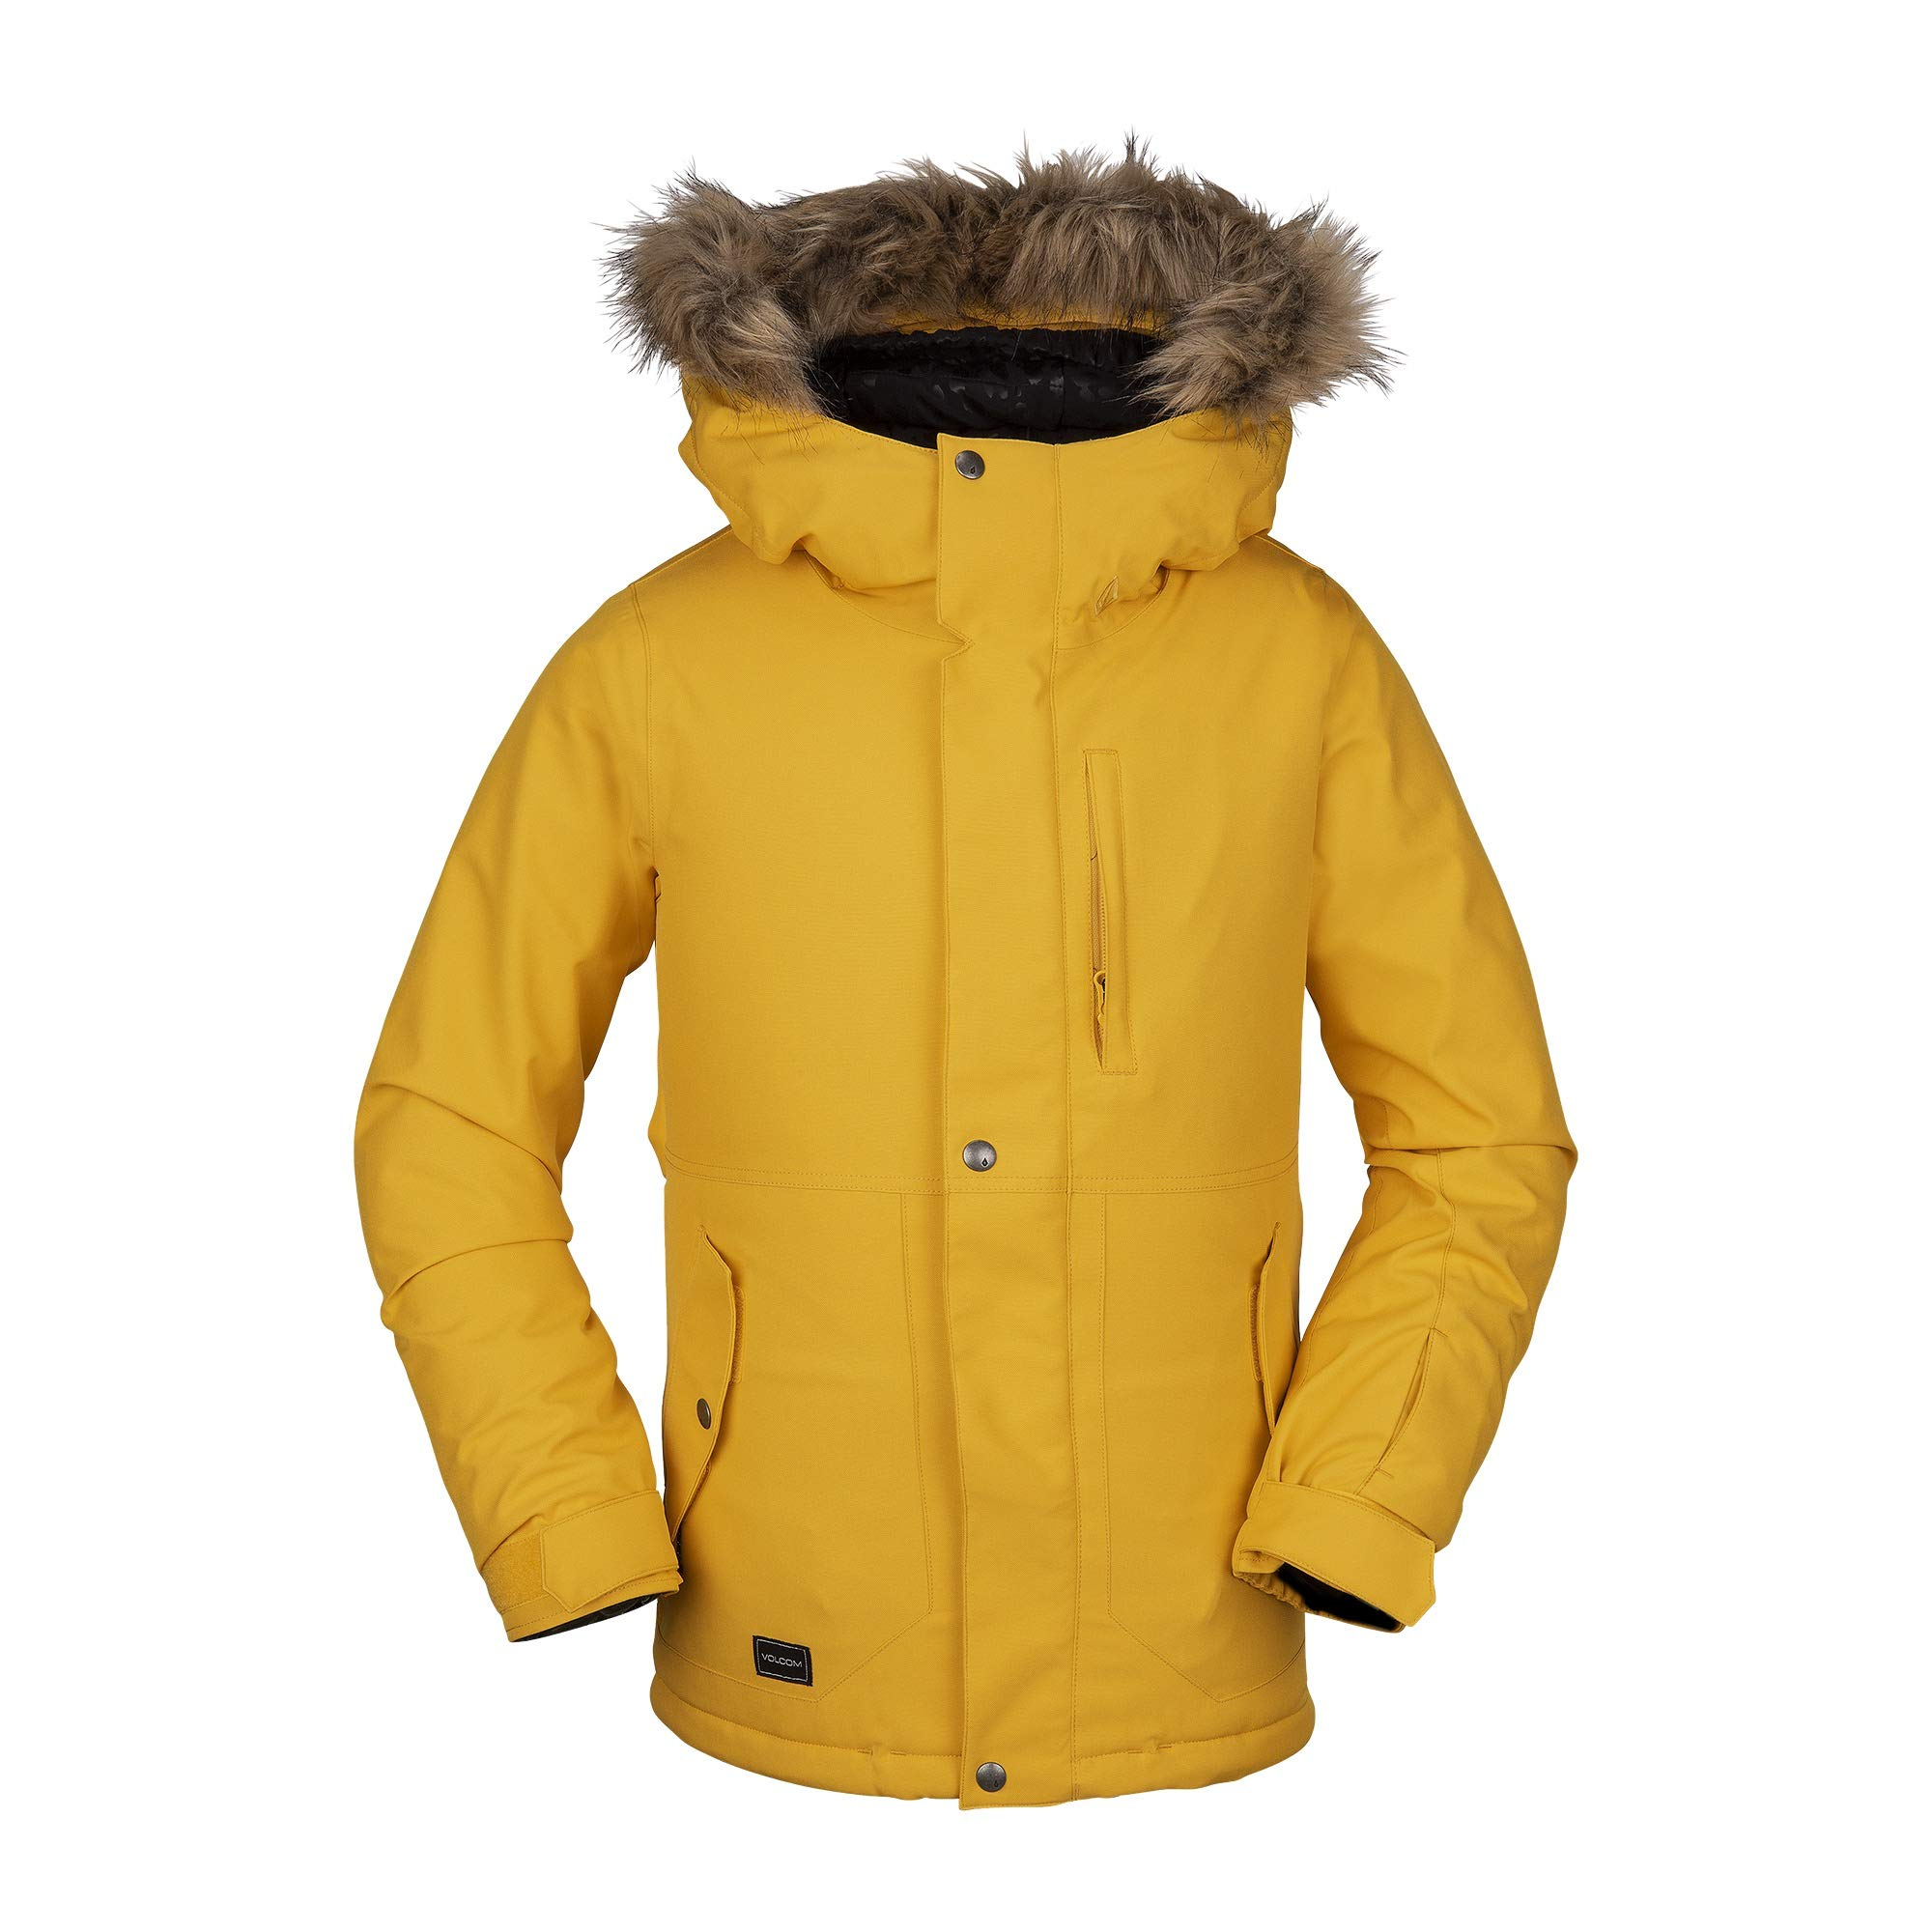 Volcom Big Girl's So Minty Insulated Snow Jacket, Yellow, Small by Volcom